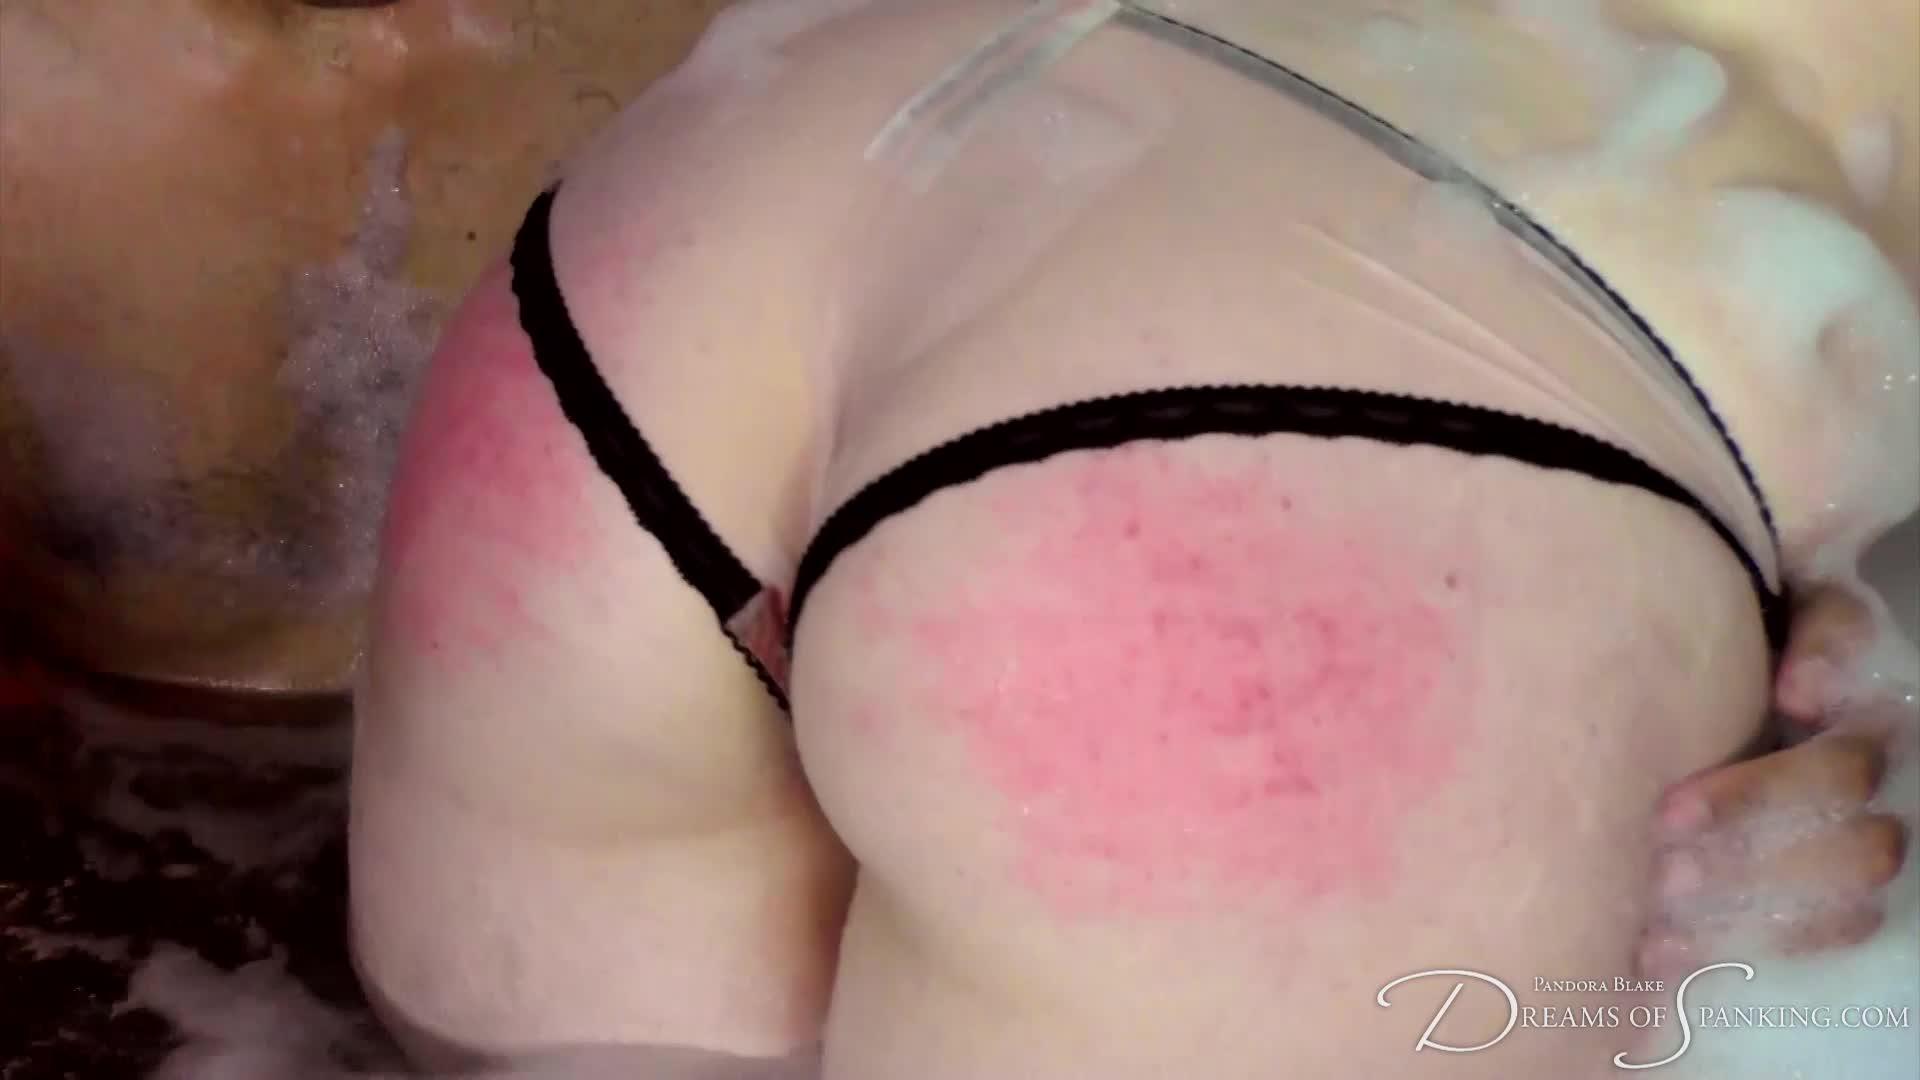 Bare bottom spankings with a real life switch couple at Dreams of Spanking